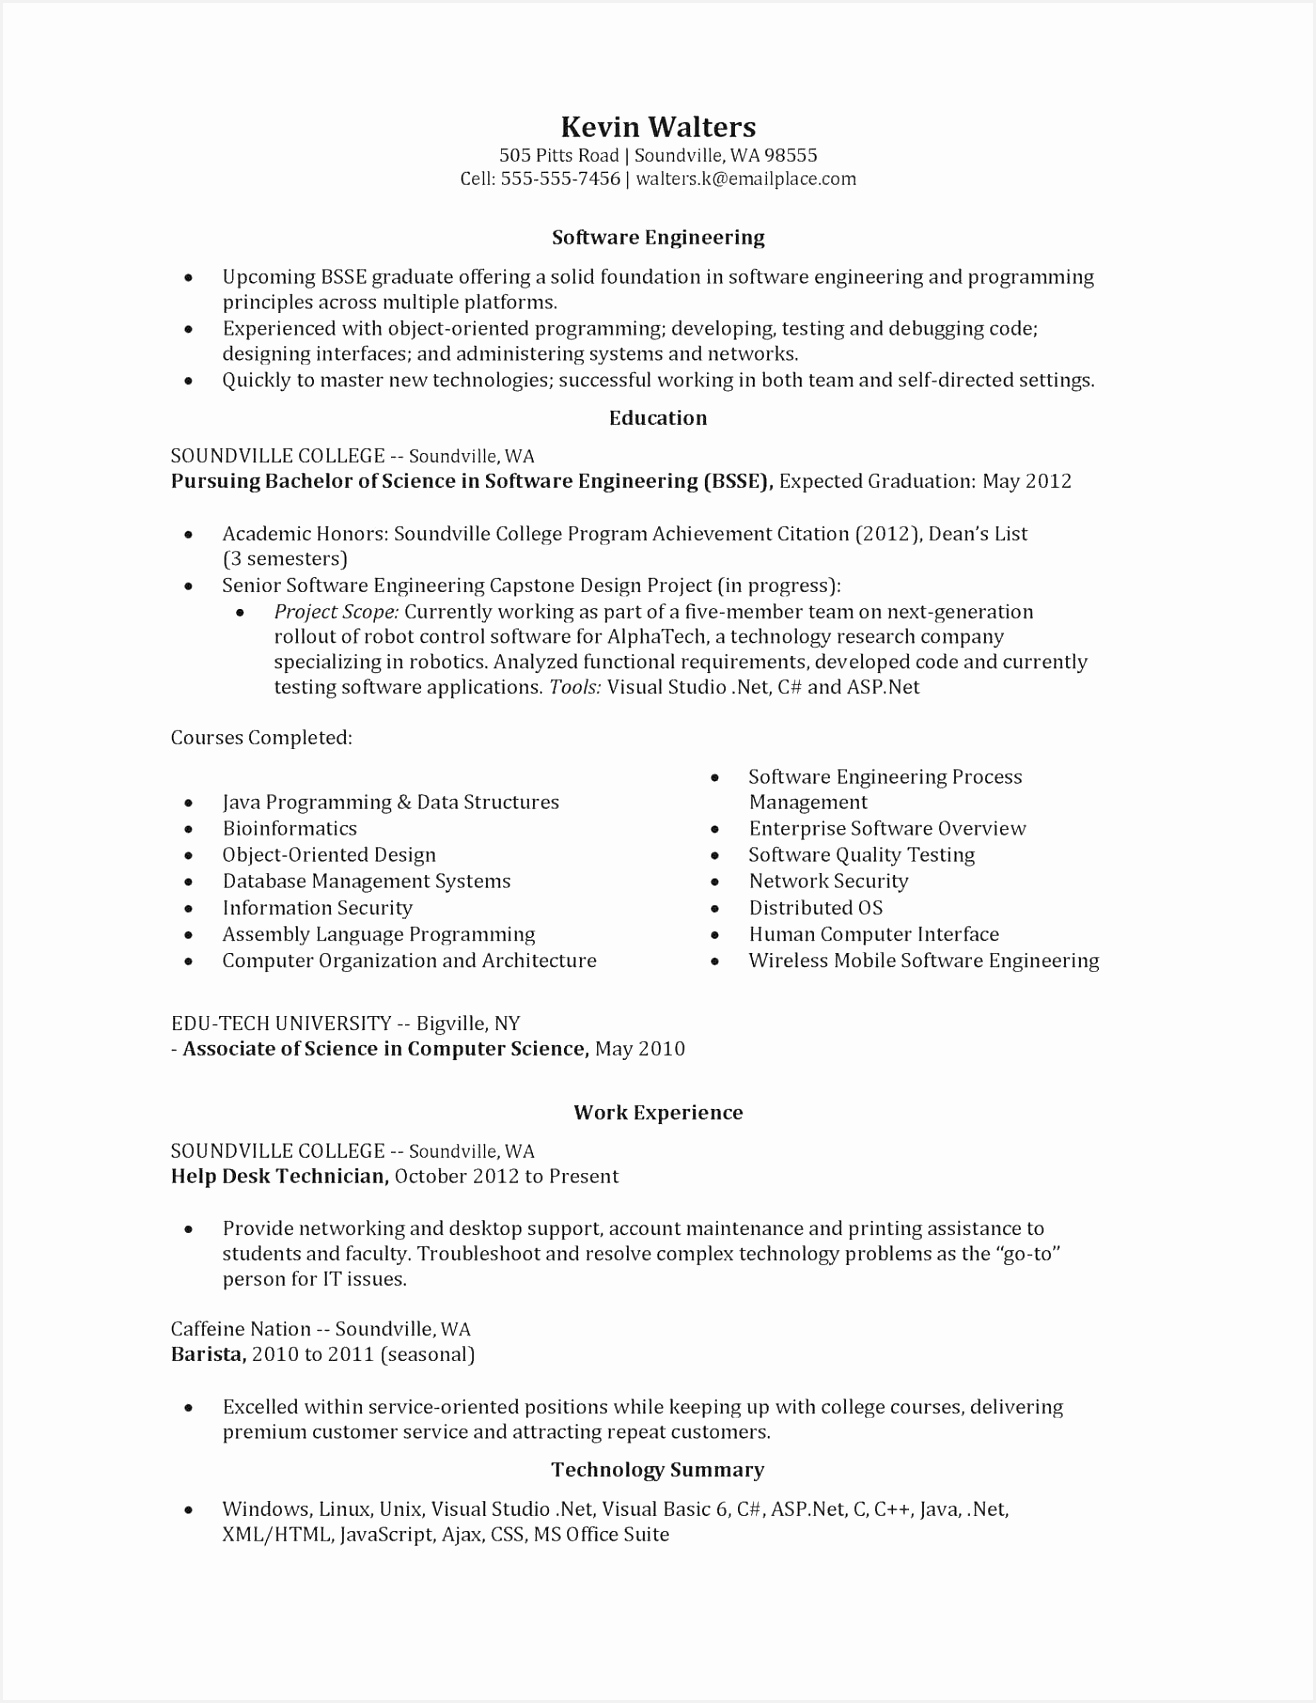 Resume Samples for Graduate School Qcsae Lovely Graduate School Resume Examples Unique Lpn Resume Sample New Line Of Resume Samples for Graduate School Fkzfo Elegant √ Resume Summary Examples Free Template Fresh Grapher Resume Sample